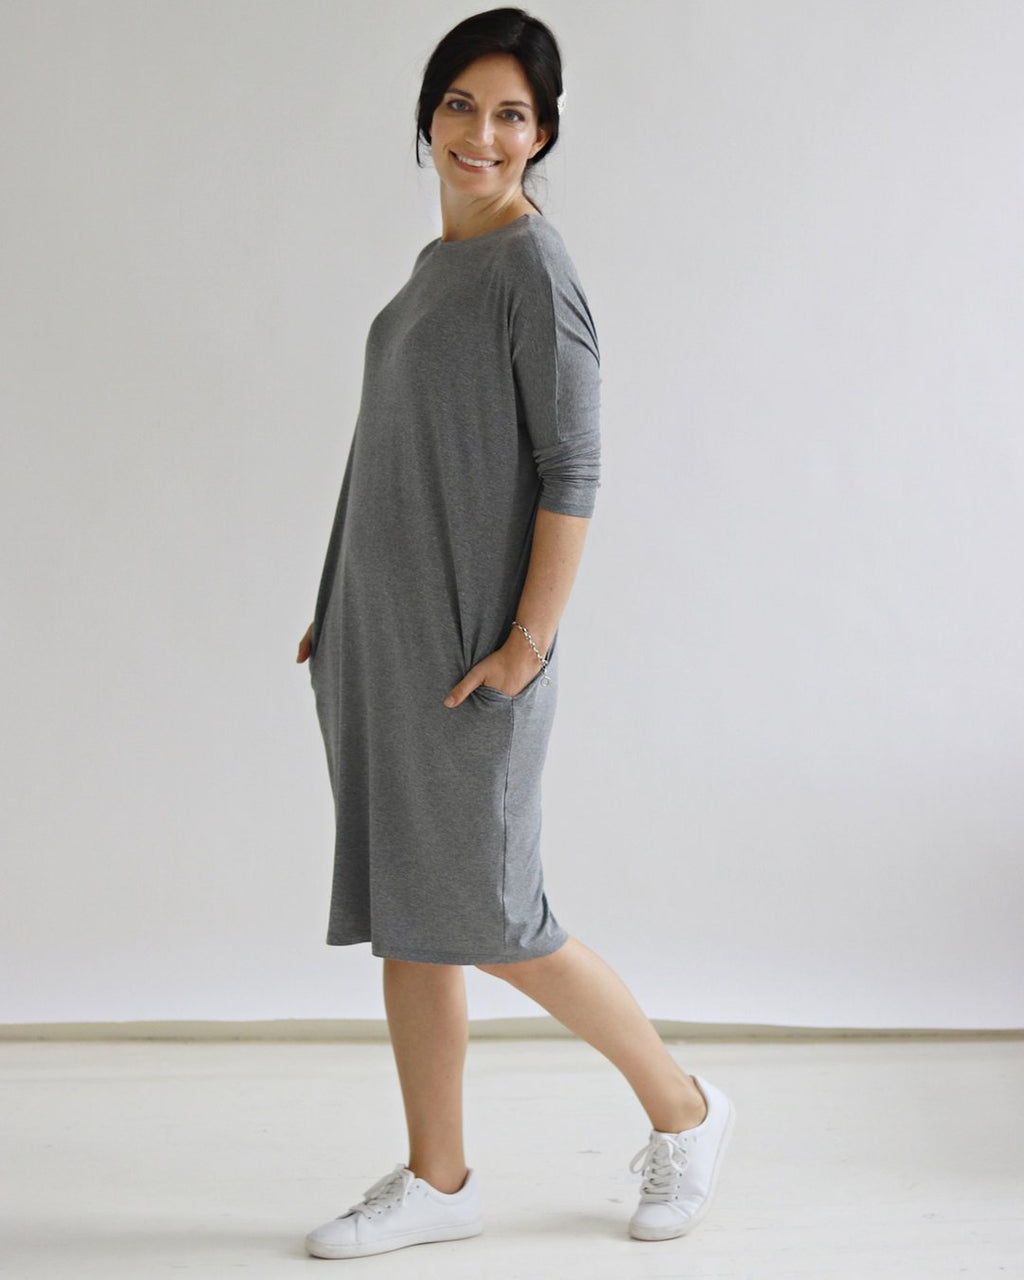 Yaffa Grey Melange Dress - Sarah Feldman Modest Clothing